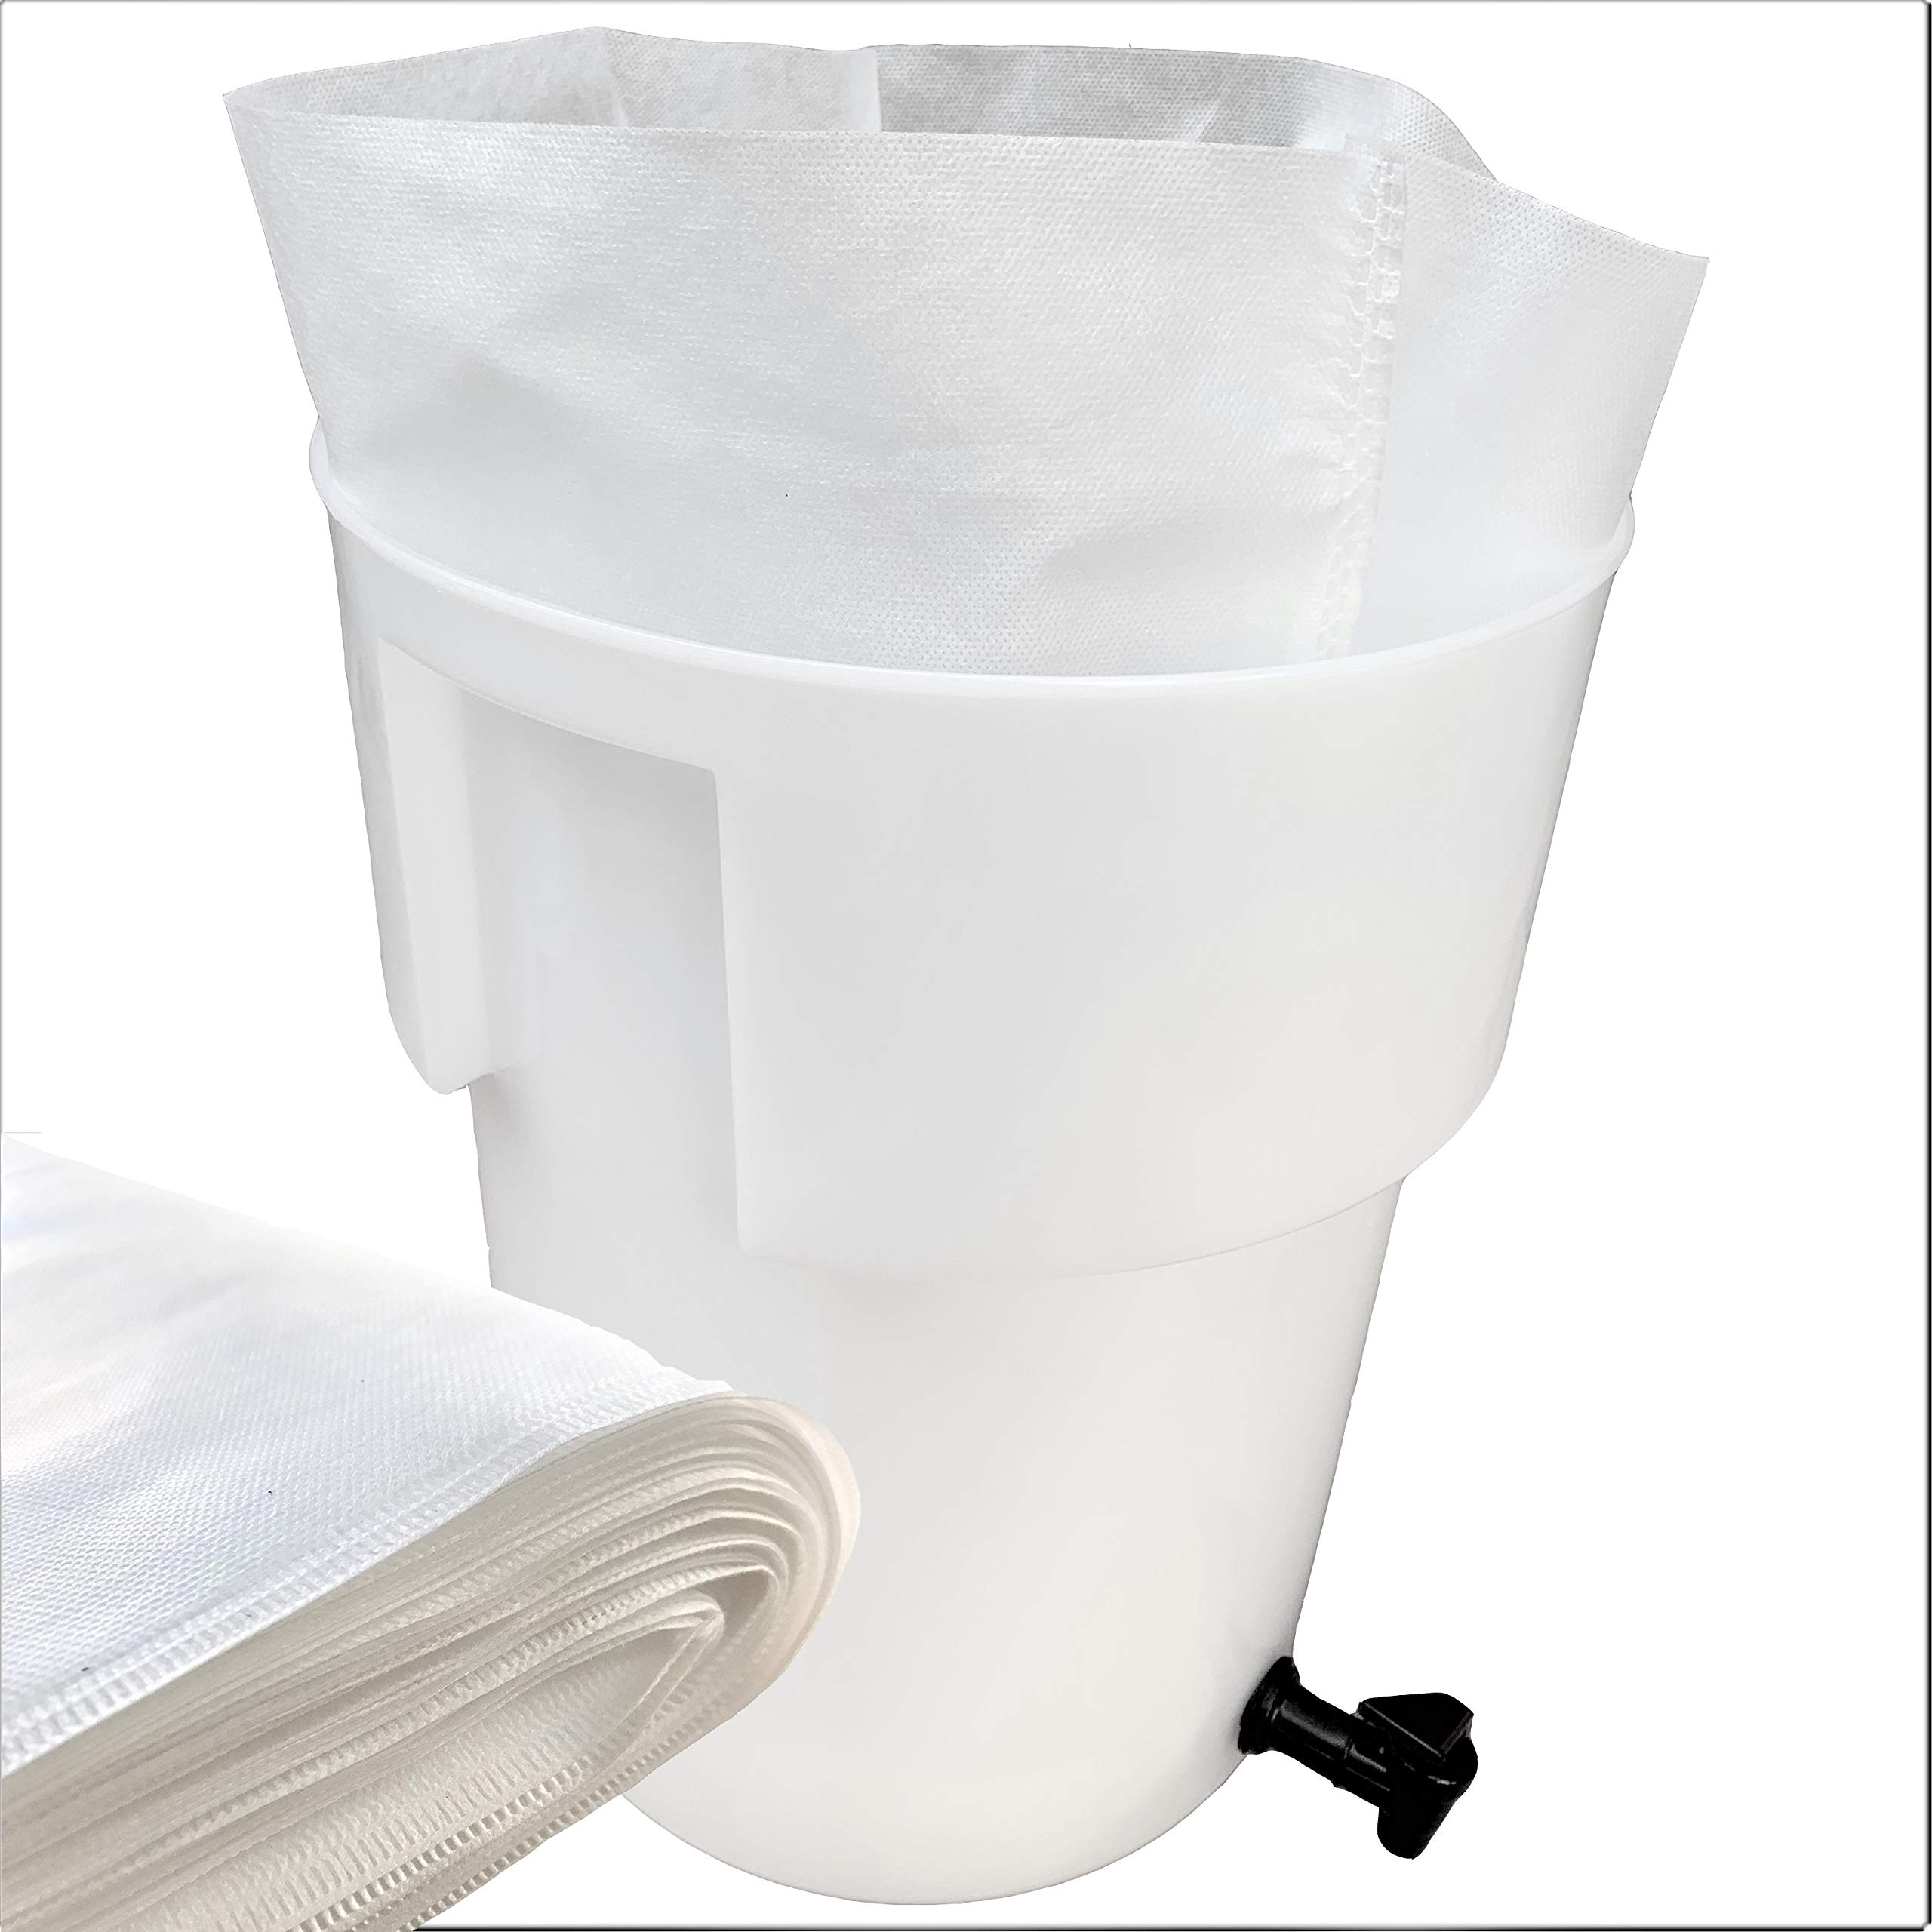 50 PACK Commercial Cold Brew Coffee Filter - Brew Commercially Like Starbucks - 20in x 20in Fits 5 Gallon Buckets by Tezpak